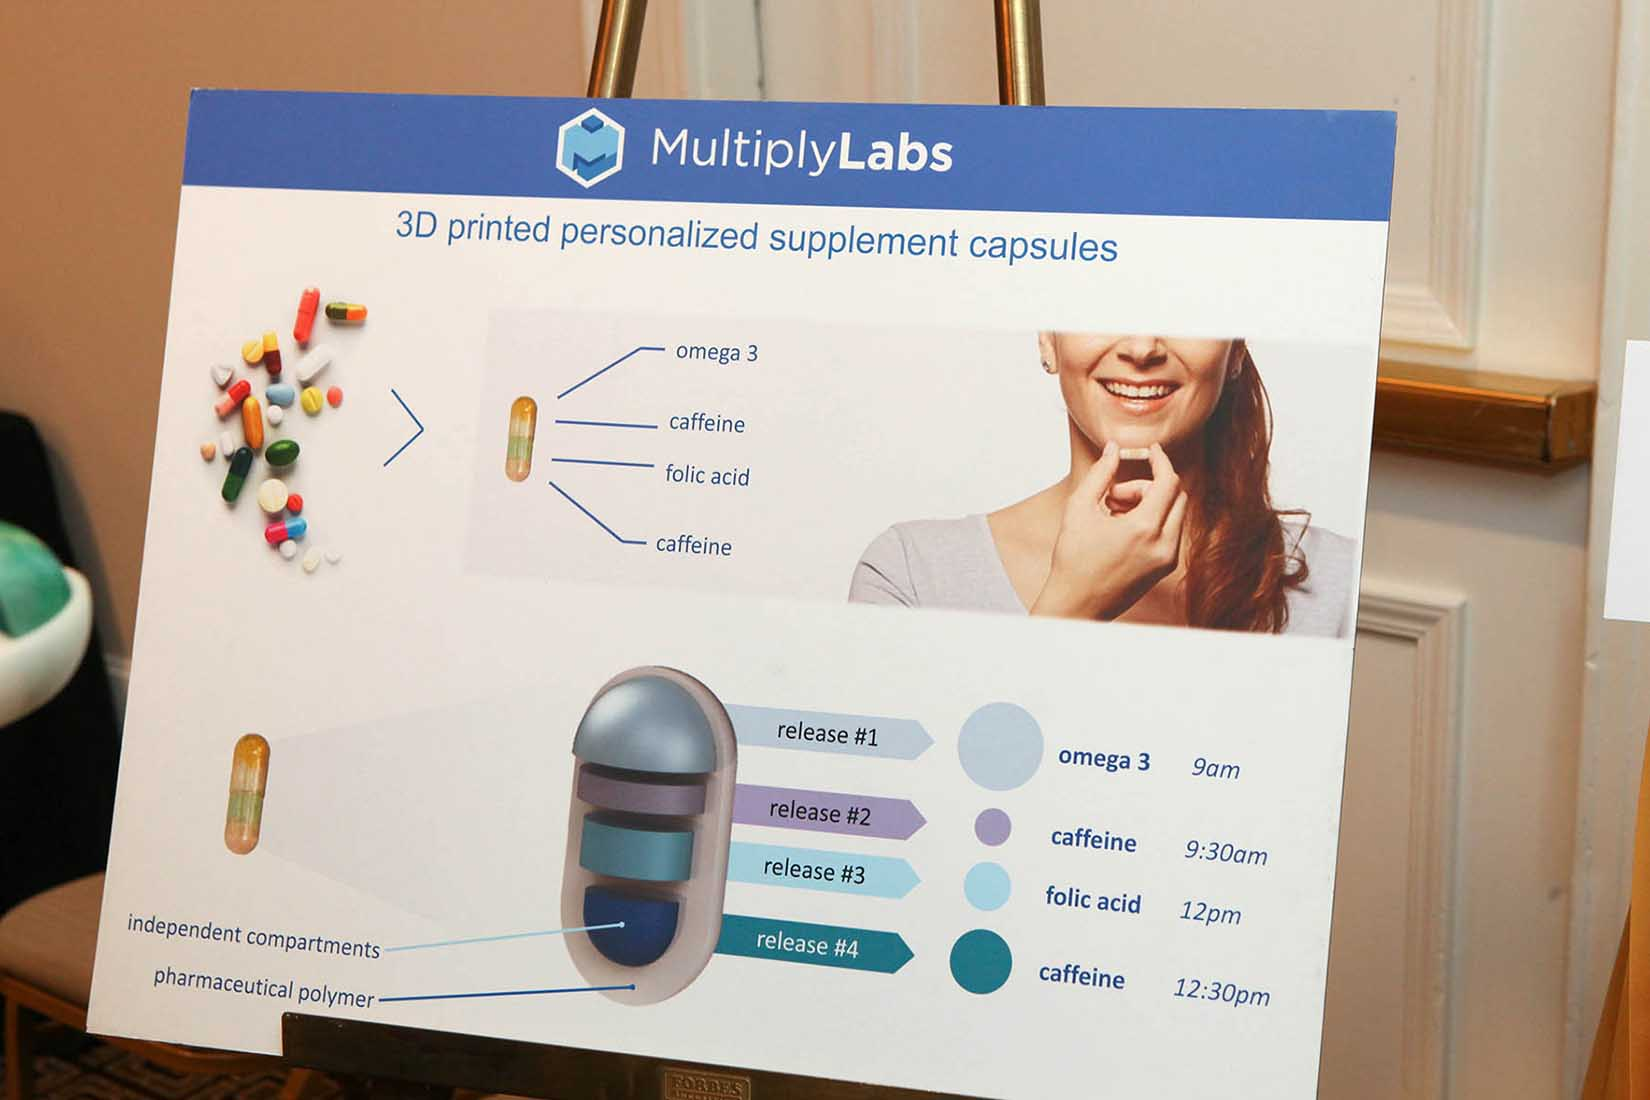 vendor display of personalized capsules